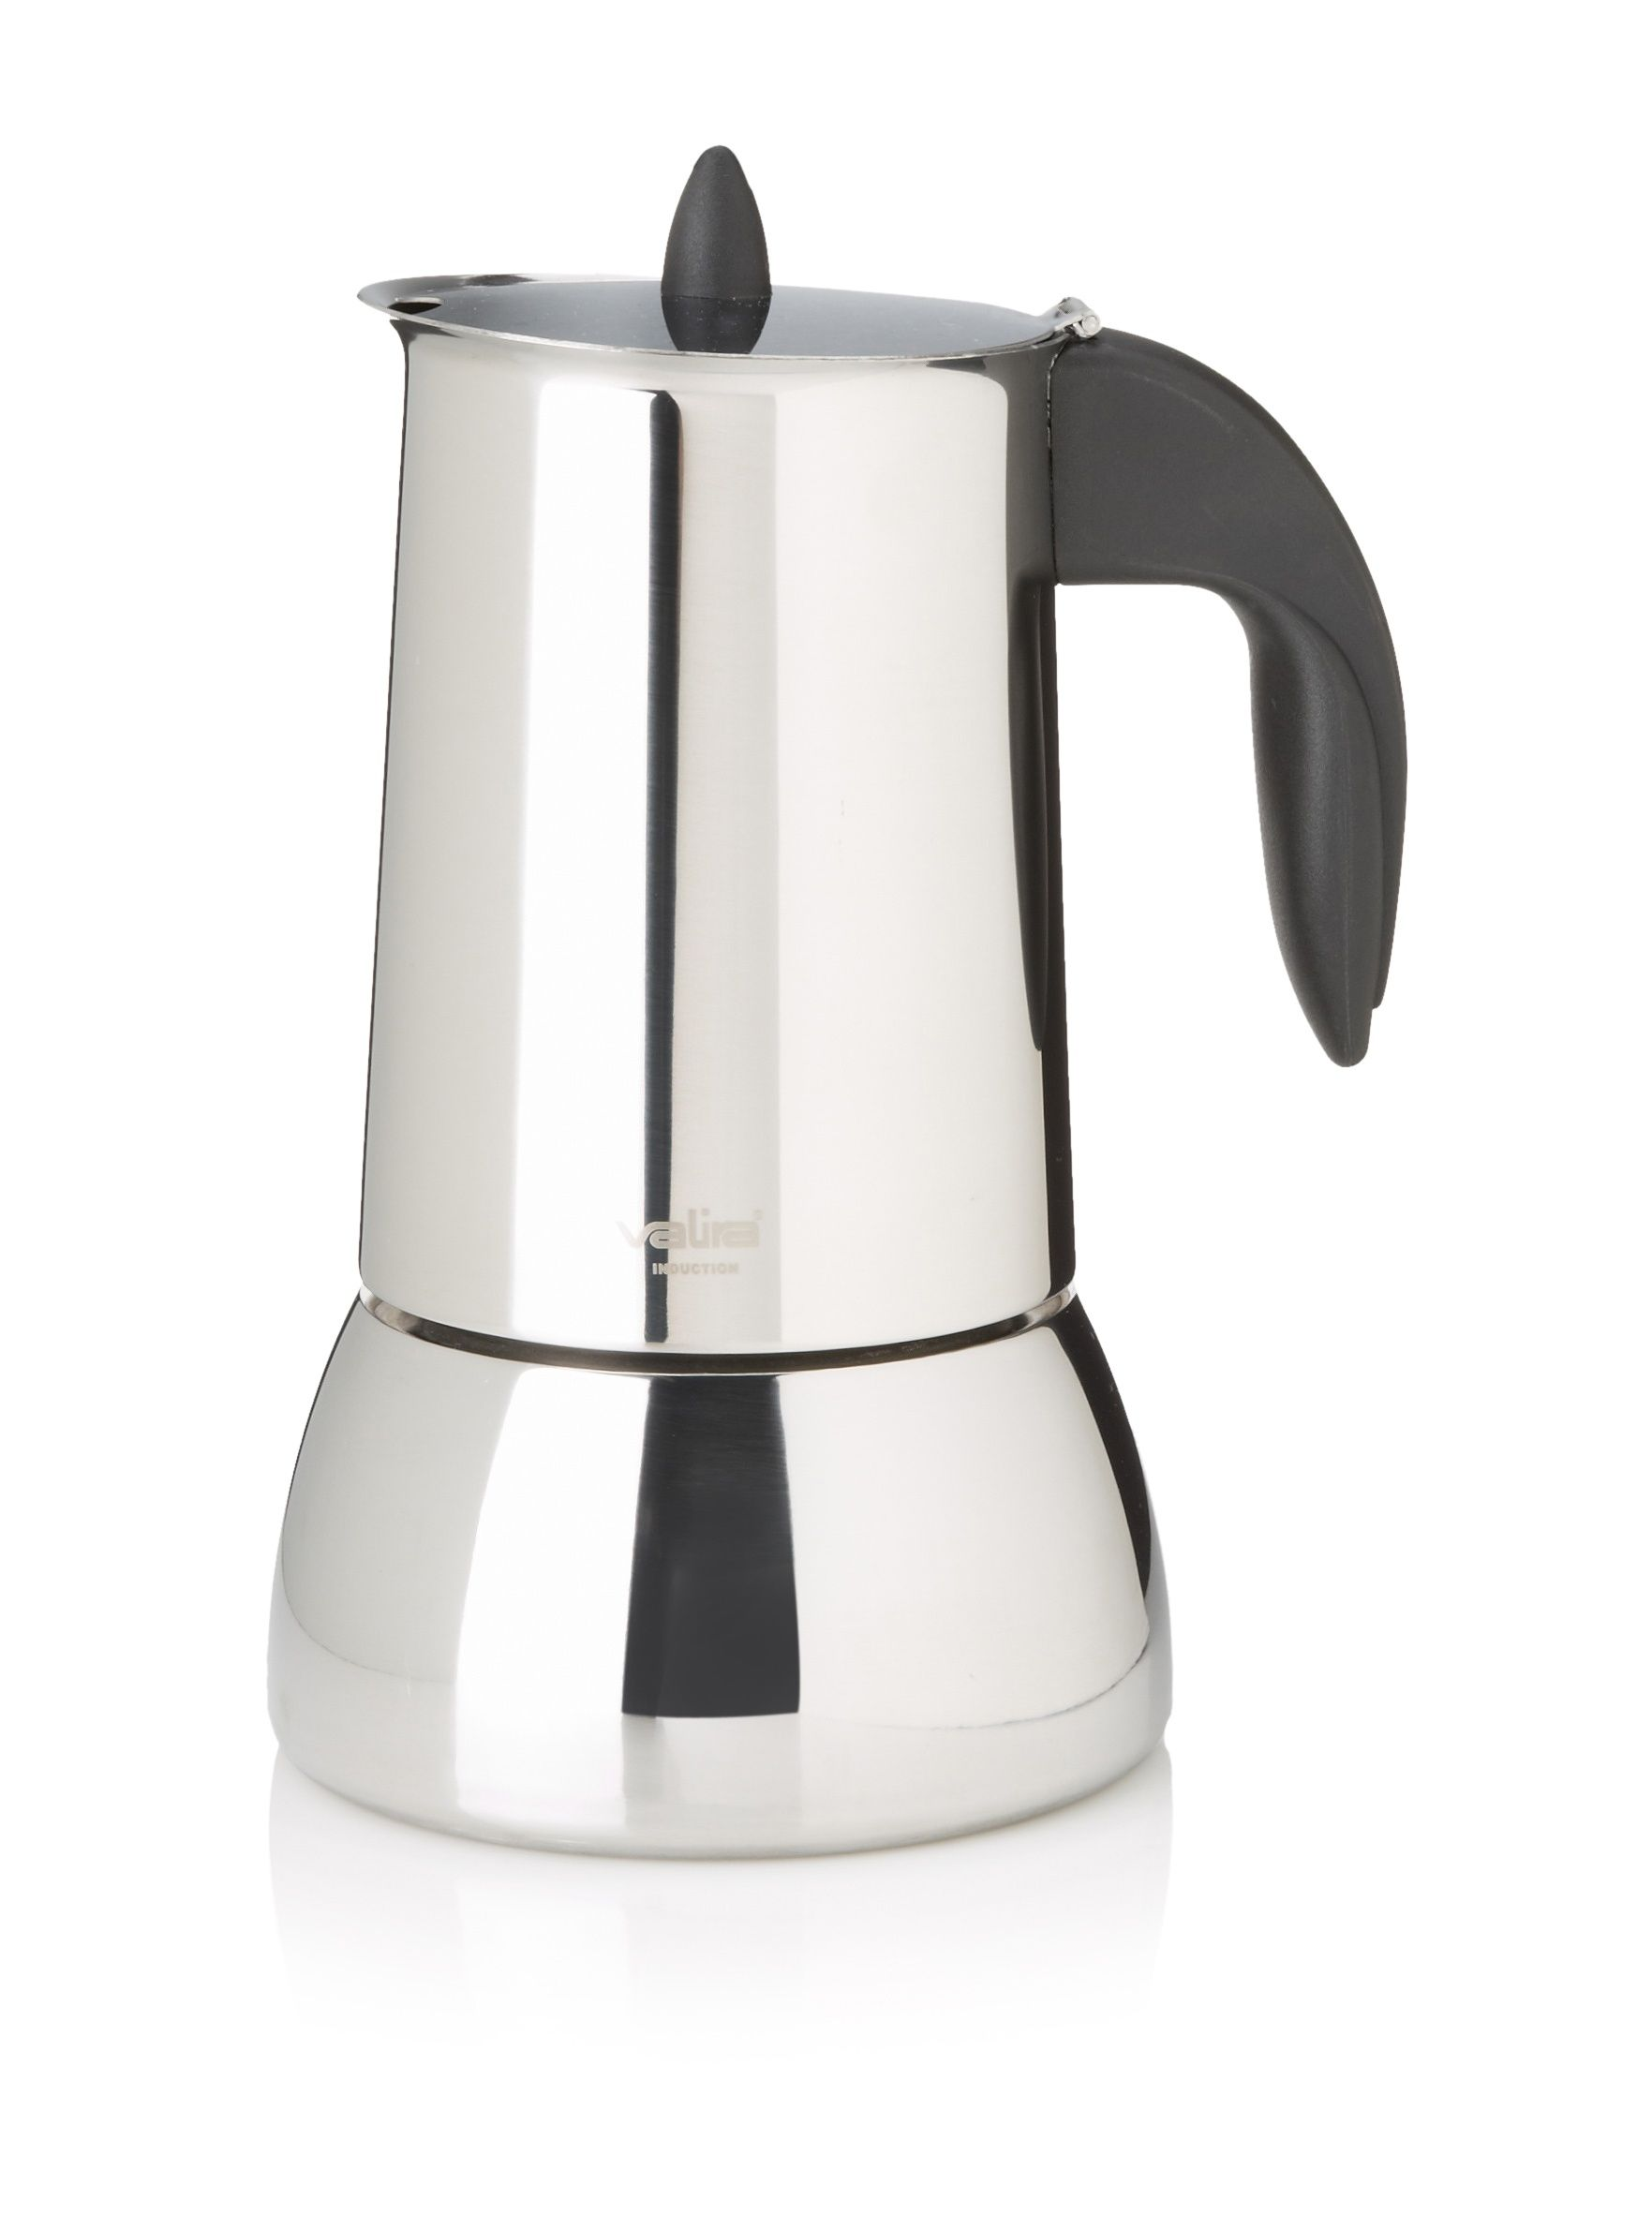 Valira Isabella Stainless Steel Cup StoveTop Coffee Maker